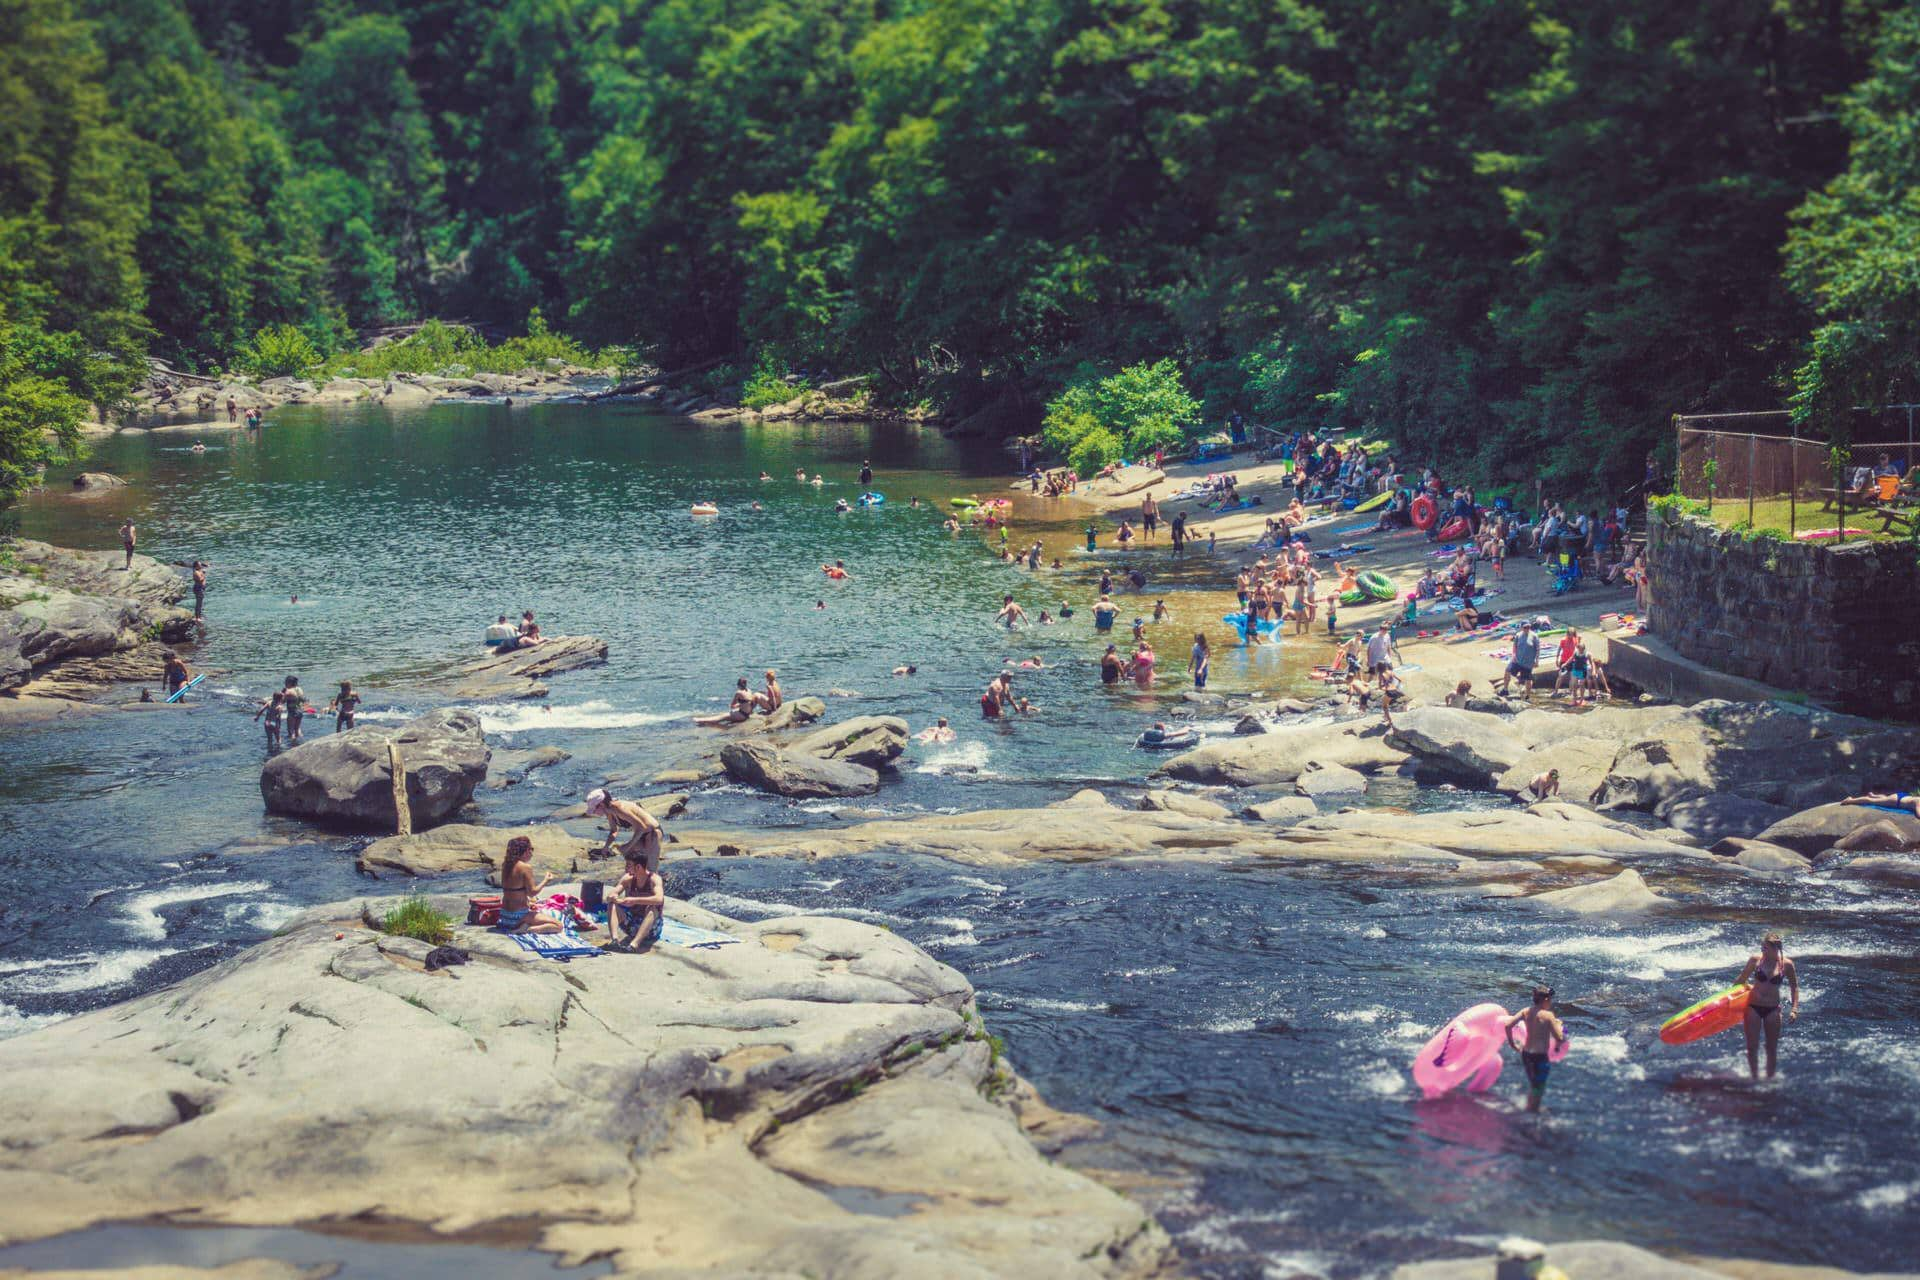 Swimming hole secrets: Beat the heat the West Virginia way